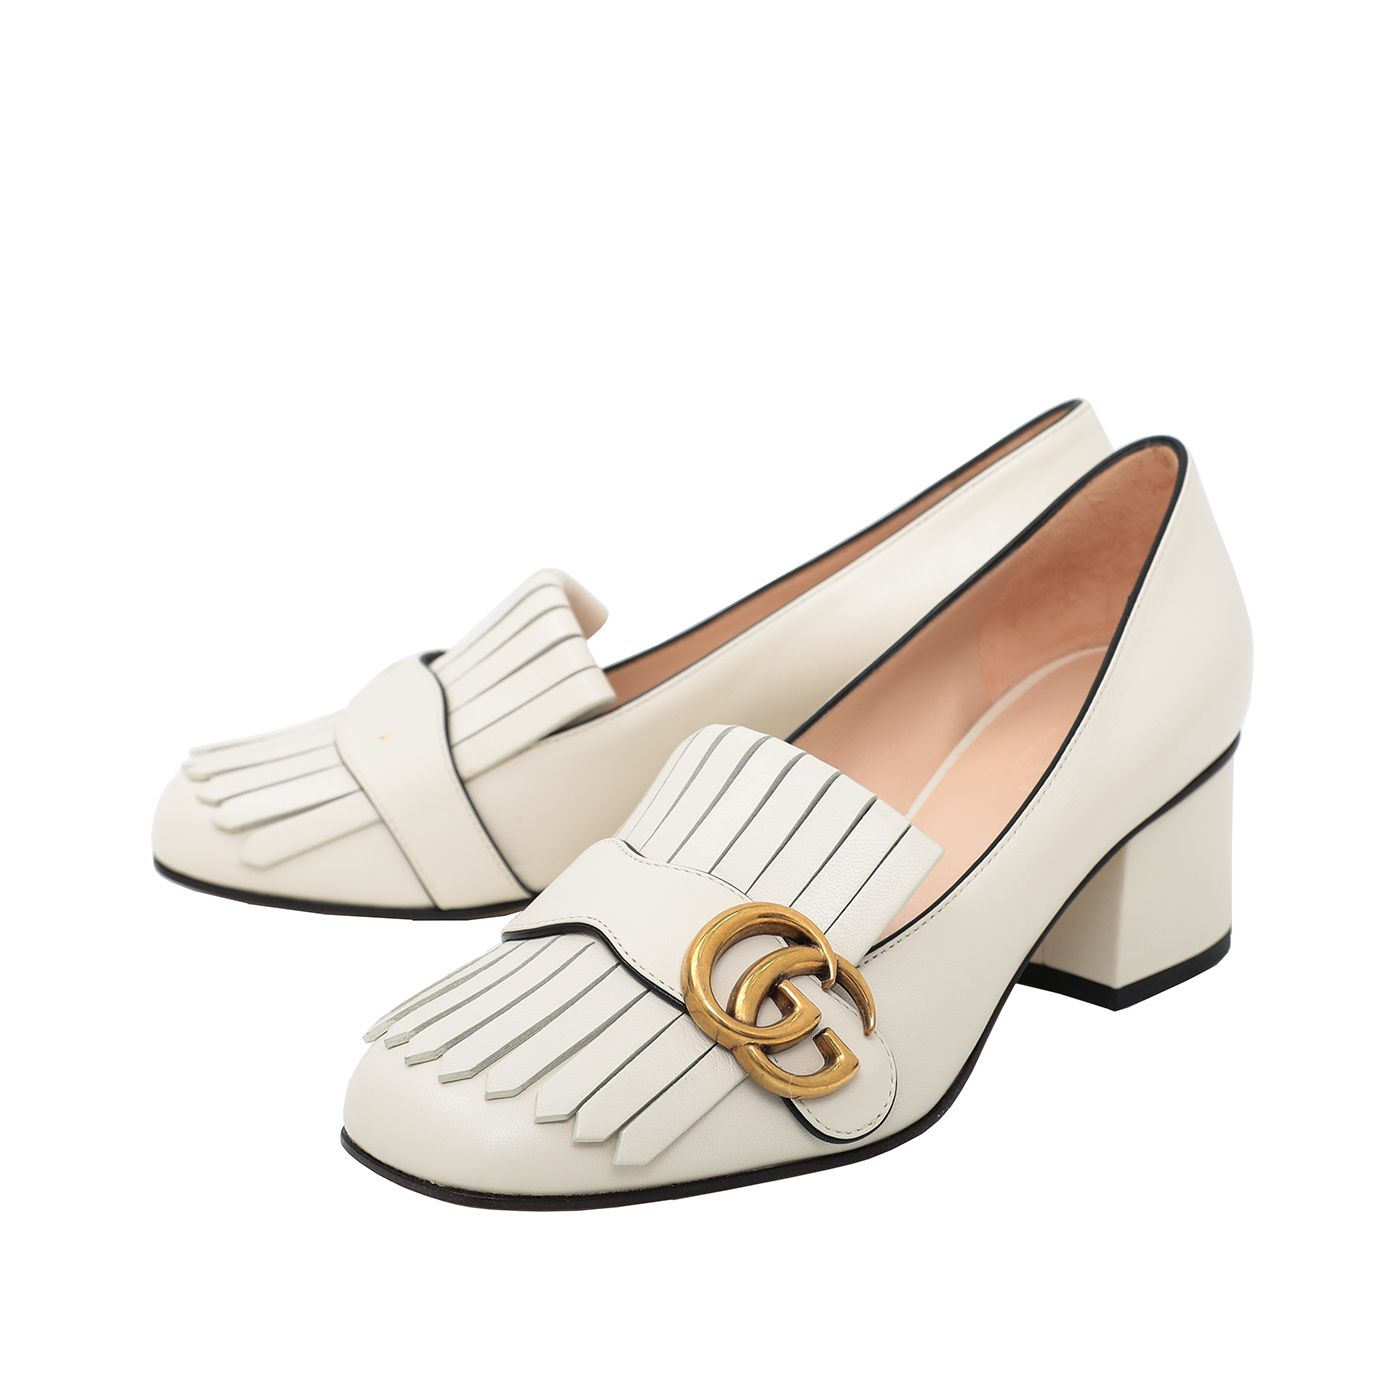 Gucci Off White Fringe Mid Heel Pump 36